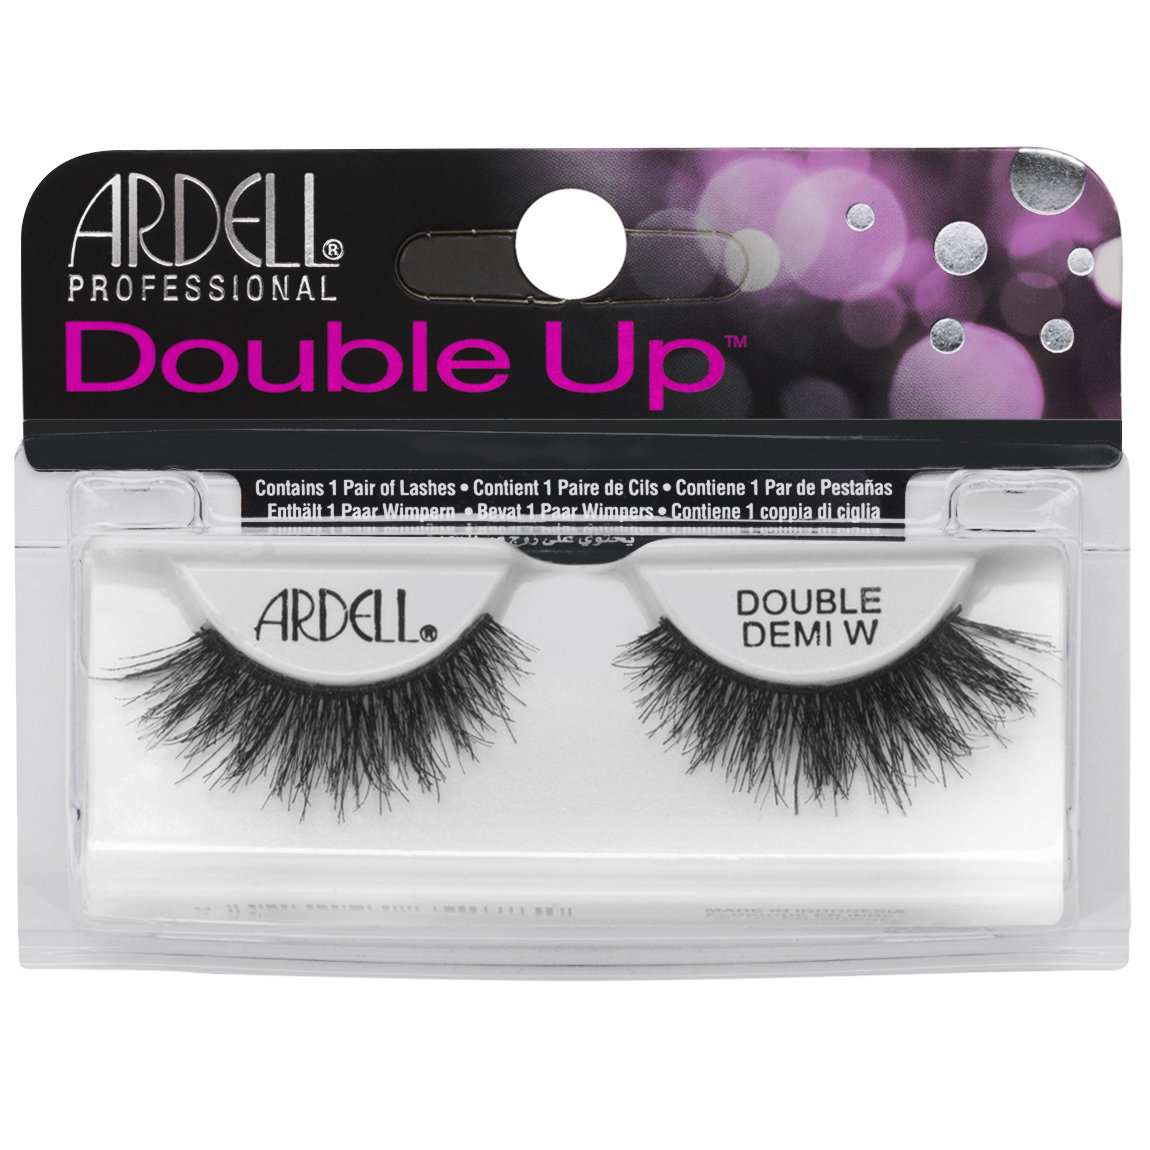 e3812b04aa7 Ardell Double Up Lashes Demi Wispies | Beautylish